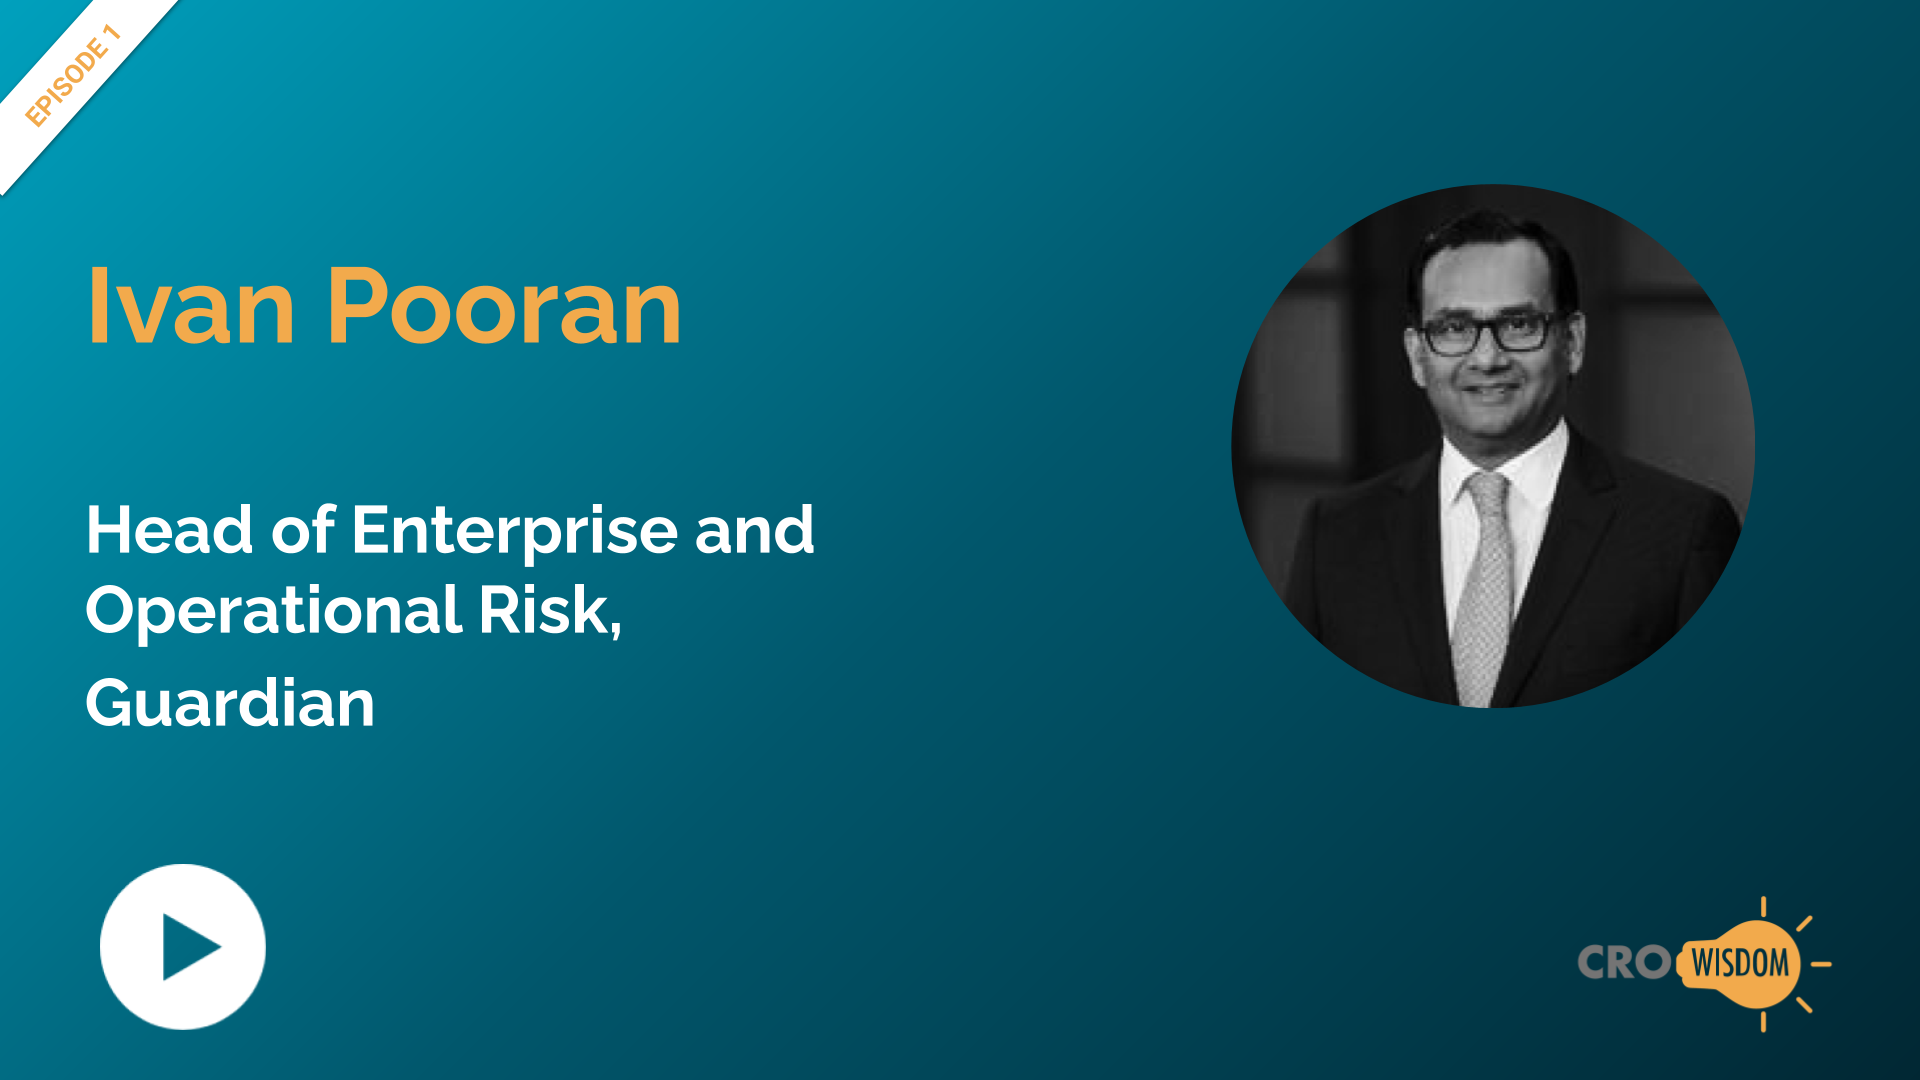 CRO Wisdom Episode 1 with Ivan Pooran, Head of Enterprise and Operational Risk, Guardian